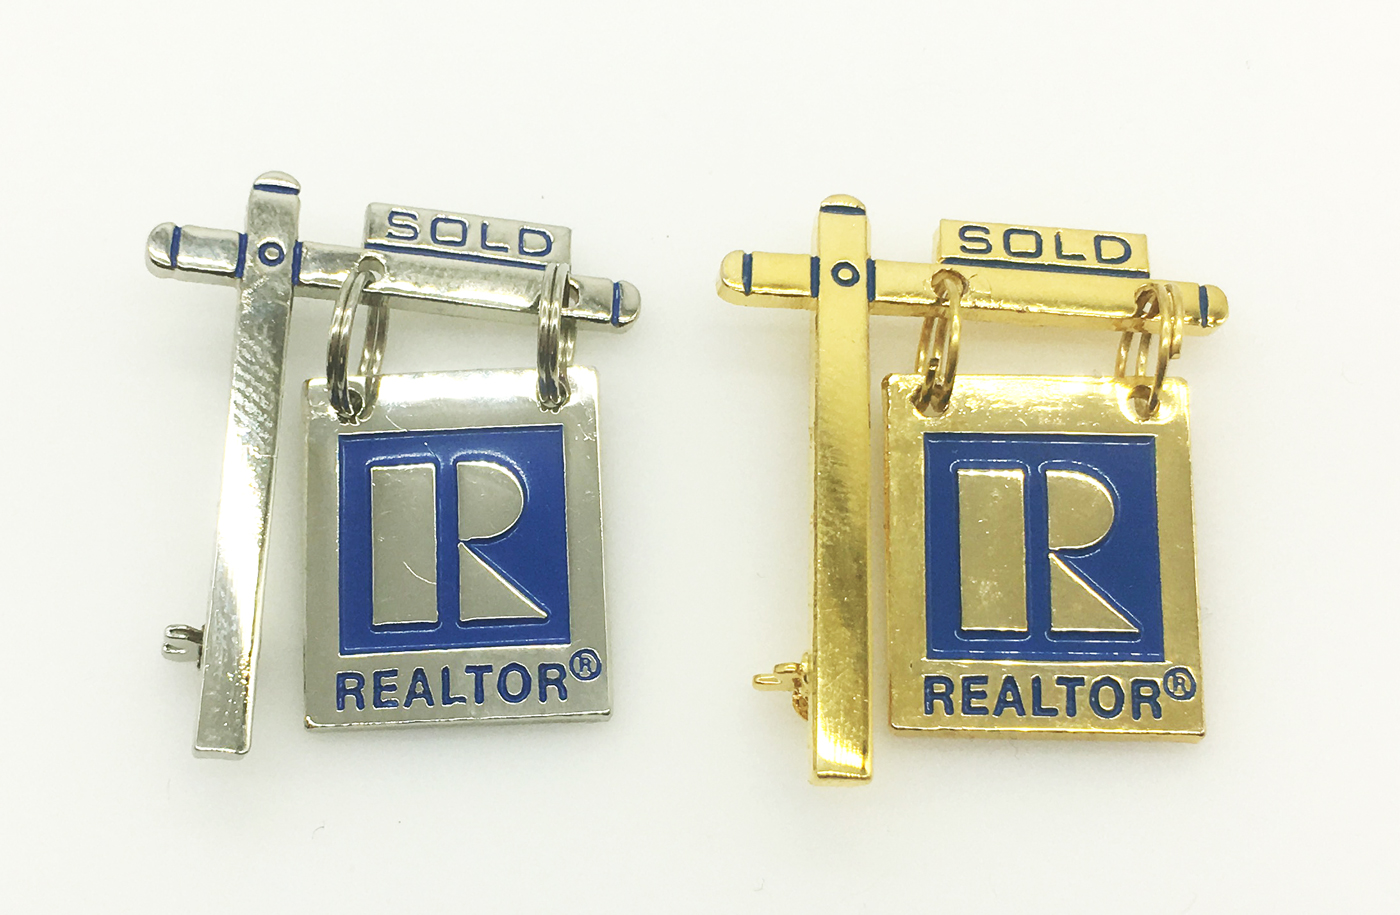 Sold Yard Sign Pin pins, magnetic, realtors, lapels, stick pins, sticks, brooch, for sale, for, sales, yards, signs, hangings, sold, golds